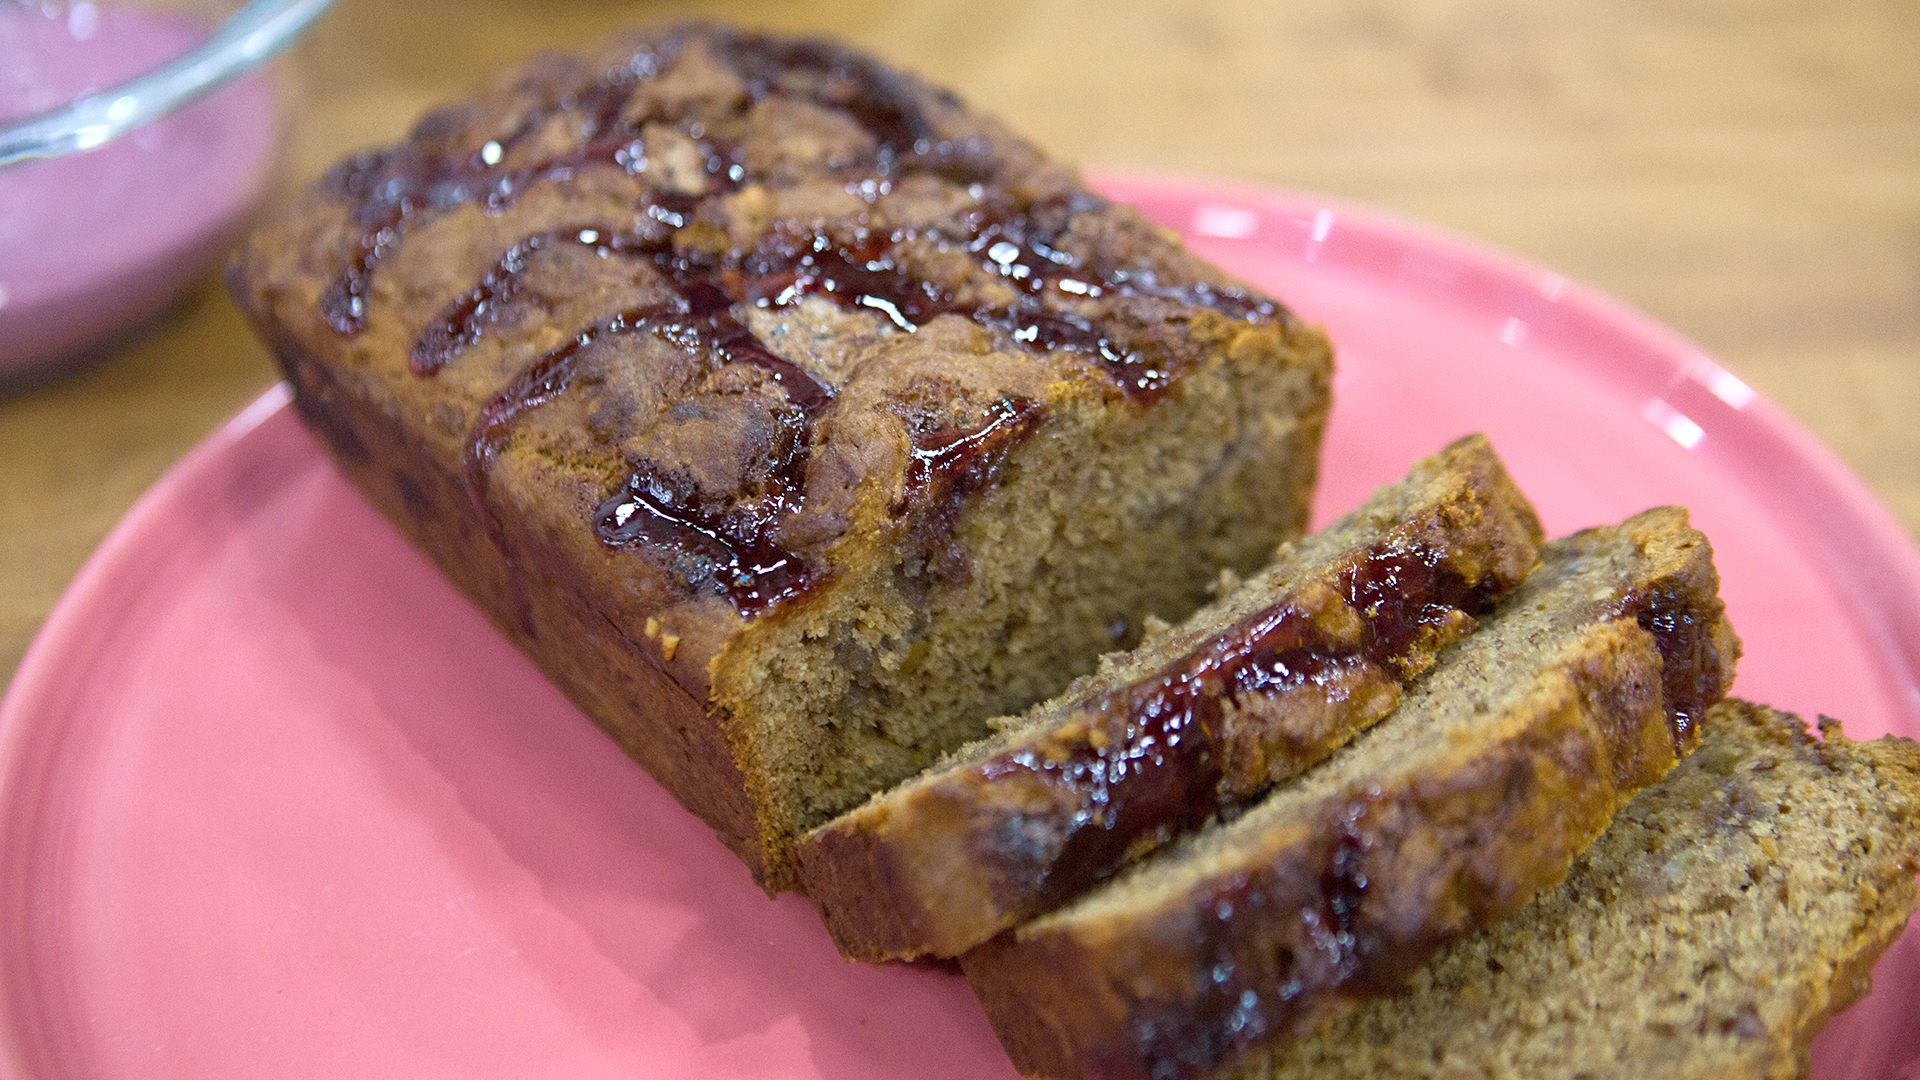 Peanut Butter and Jelly Swirled Banana Bread - TODAY.com